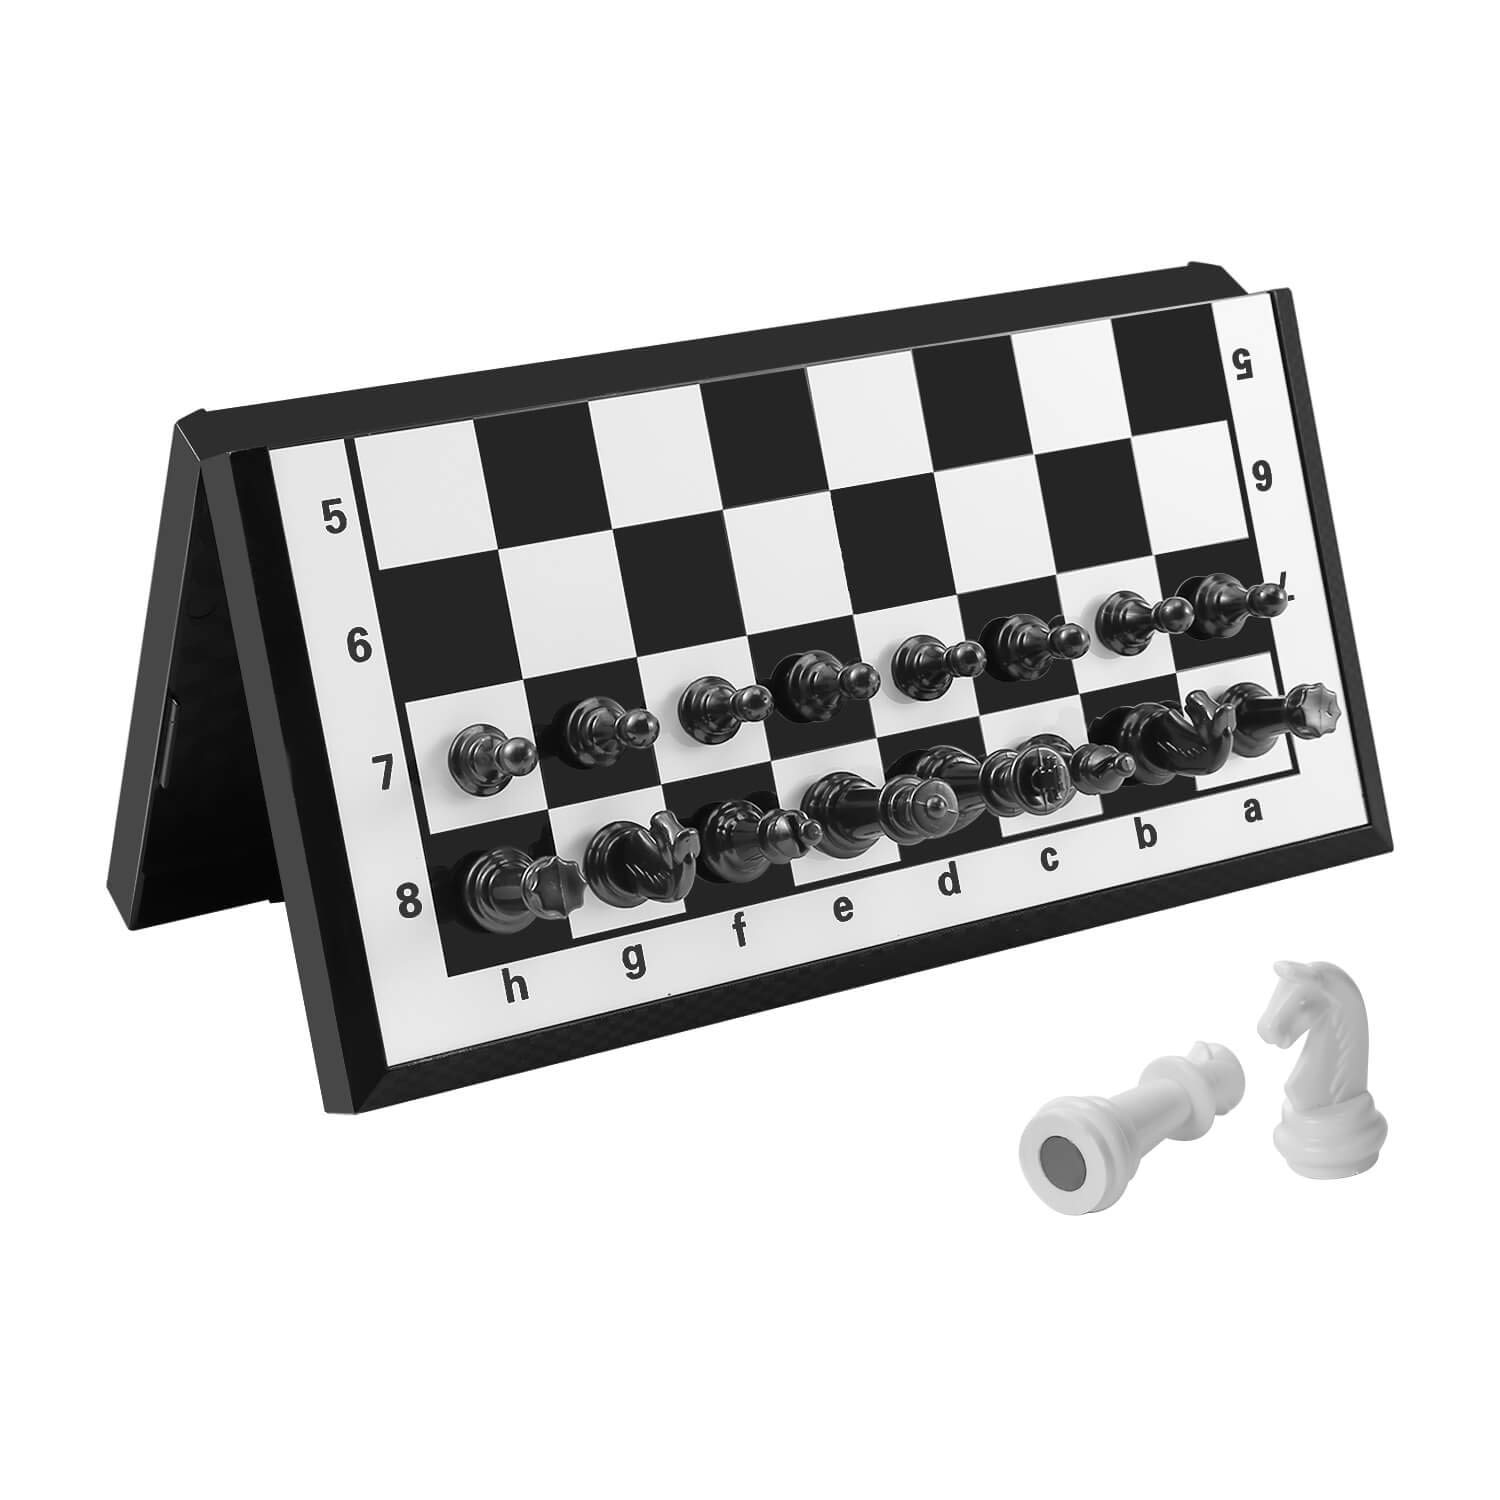 Chess Set Magnetic Travel Folding Board Games Portable Toys for Kids and Teens by FanVince